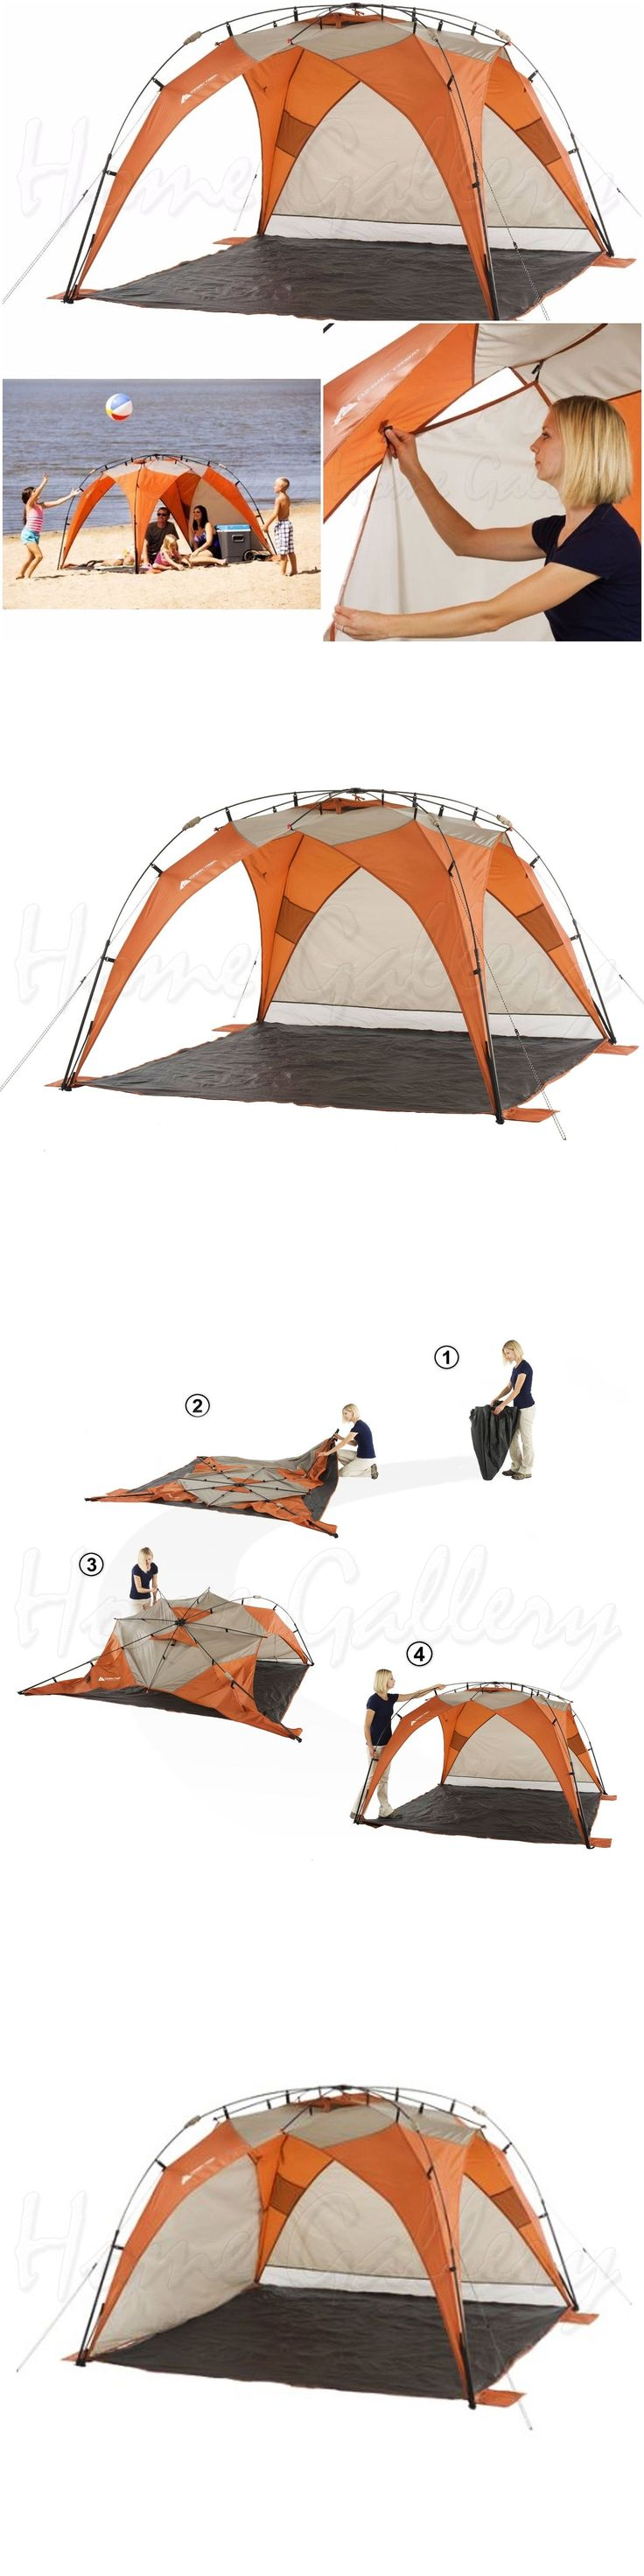 Canopies and Shelters 179011: Ozark Trail Sun Shade Portable Tent 8X8 Instant Beach Outdoor Shelter Camping -> BUY IT NOW ONLY: $76.4 on eBay!